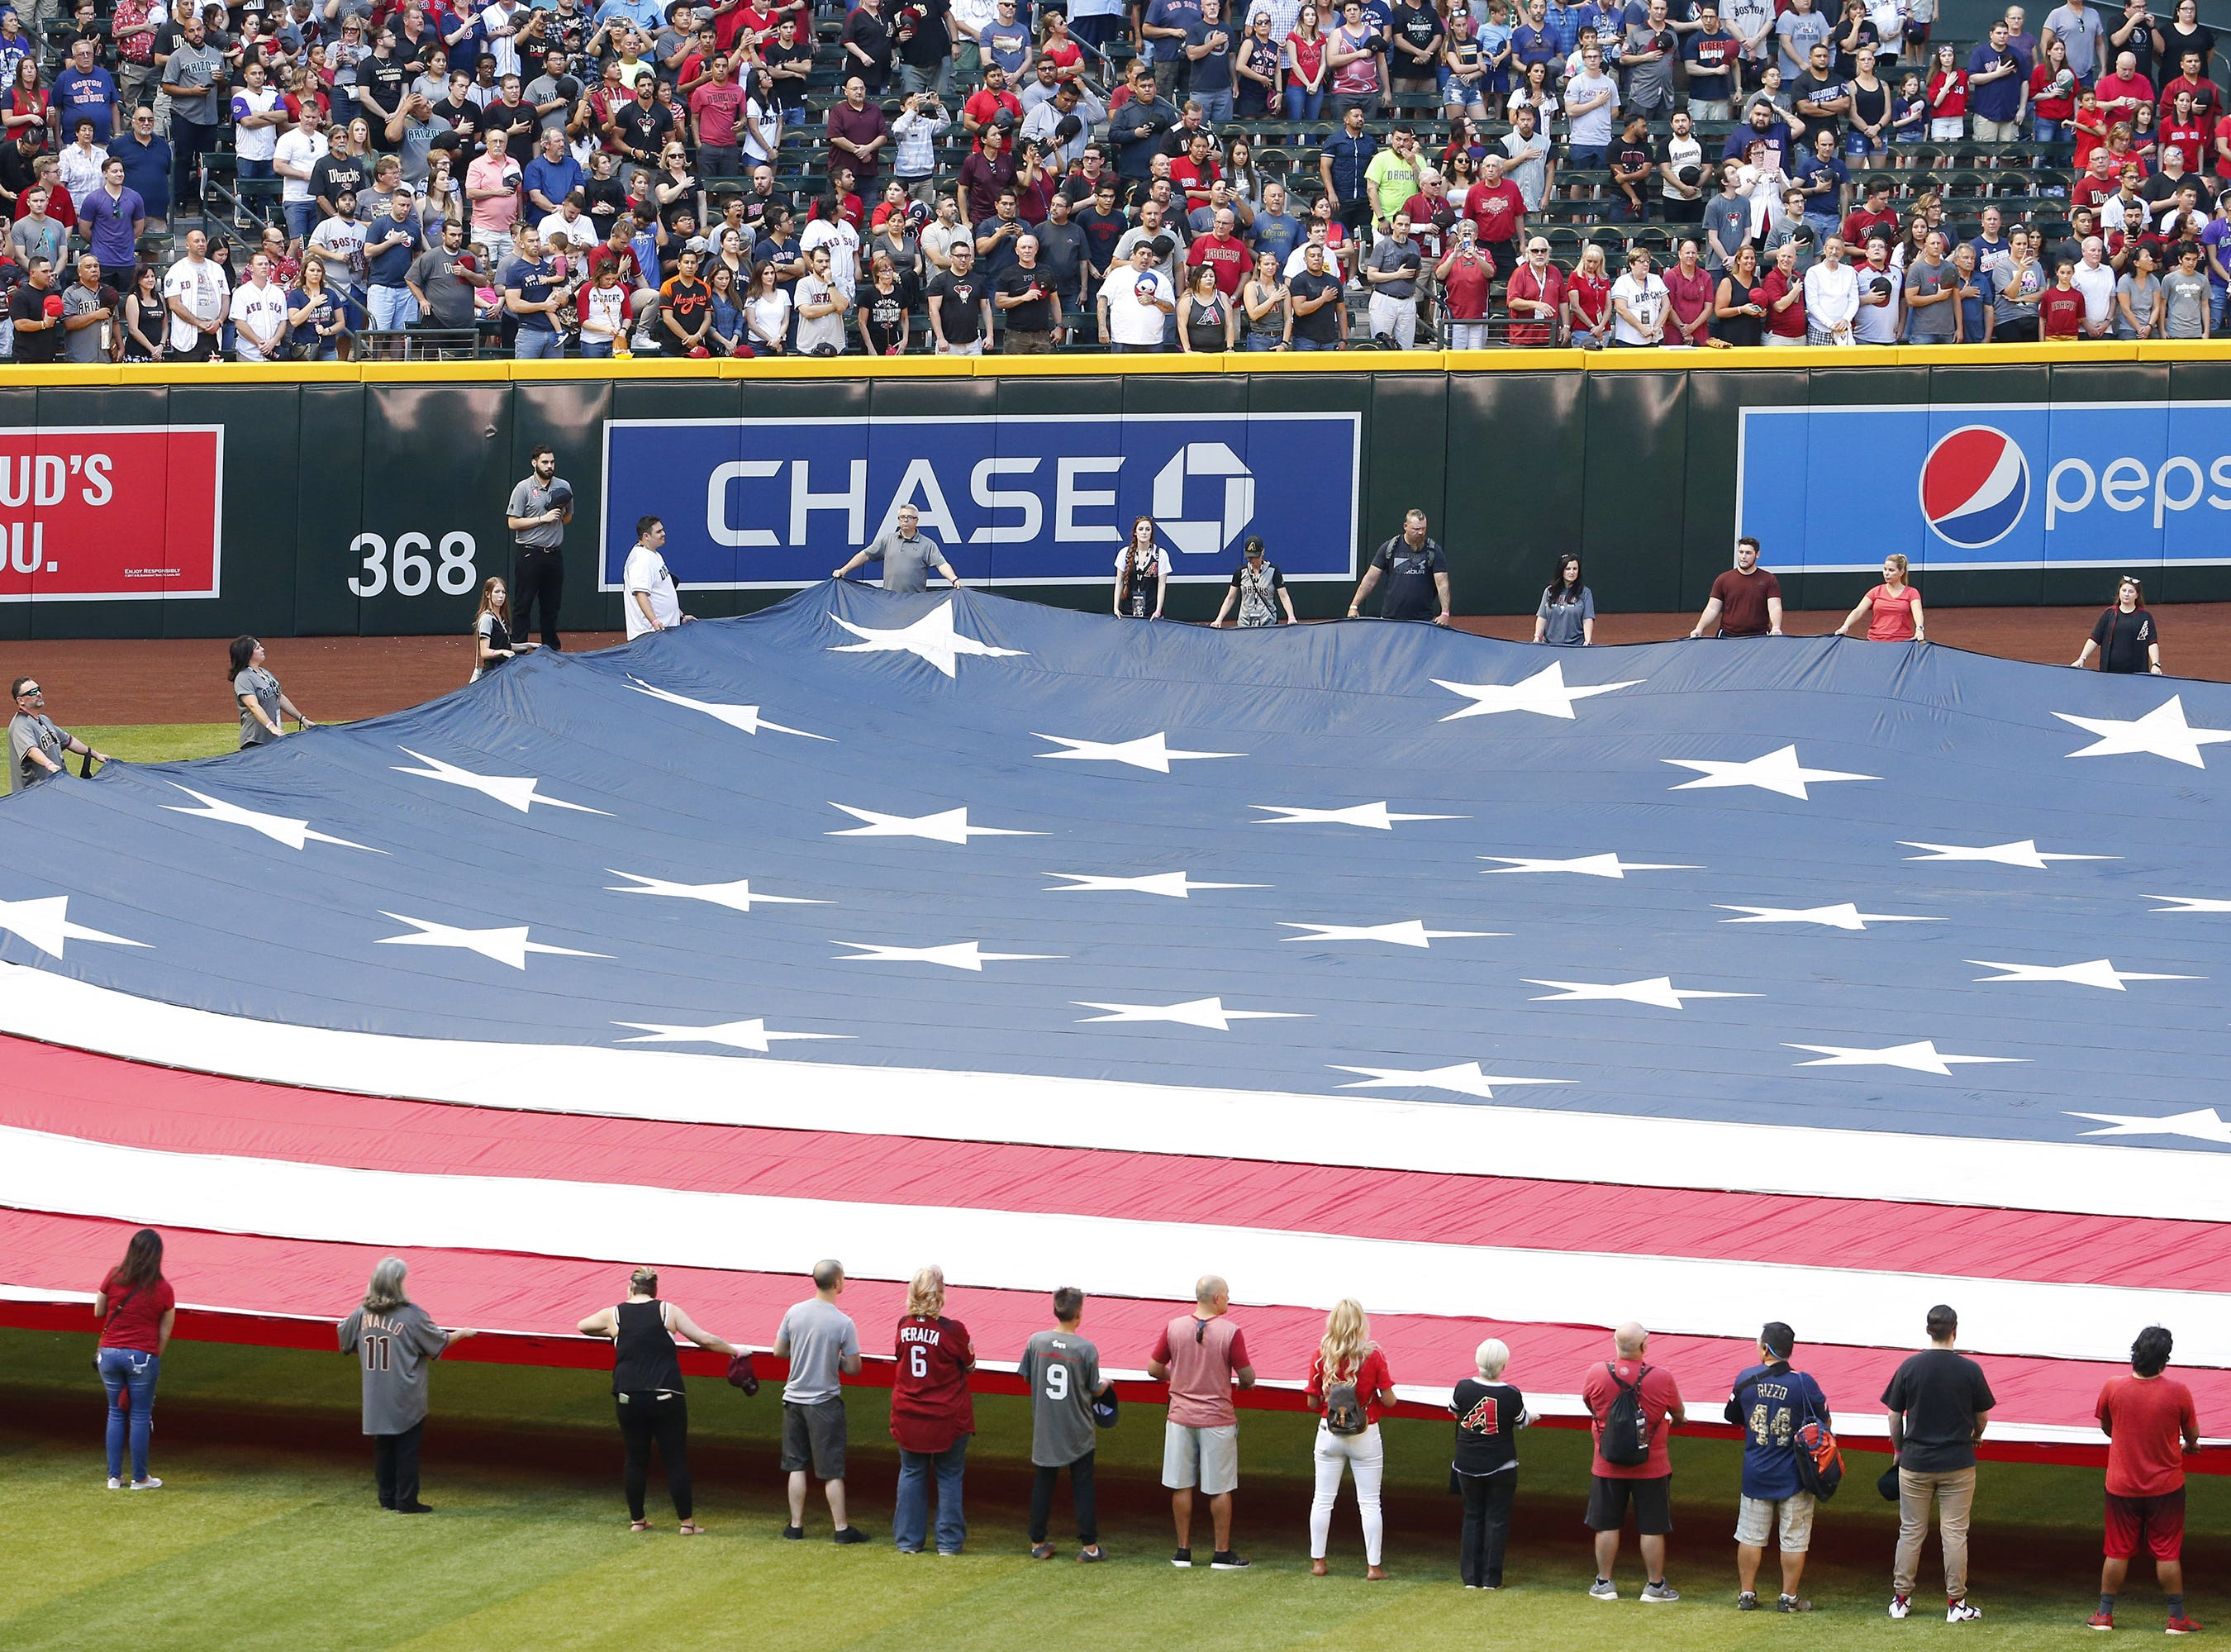 Arizona Diamondbacks fans hold the flag during the National Anthem on Opening Day at Chase Field in Phoenix on April 5.